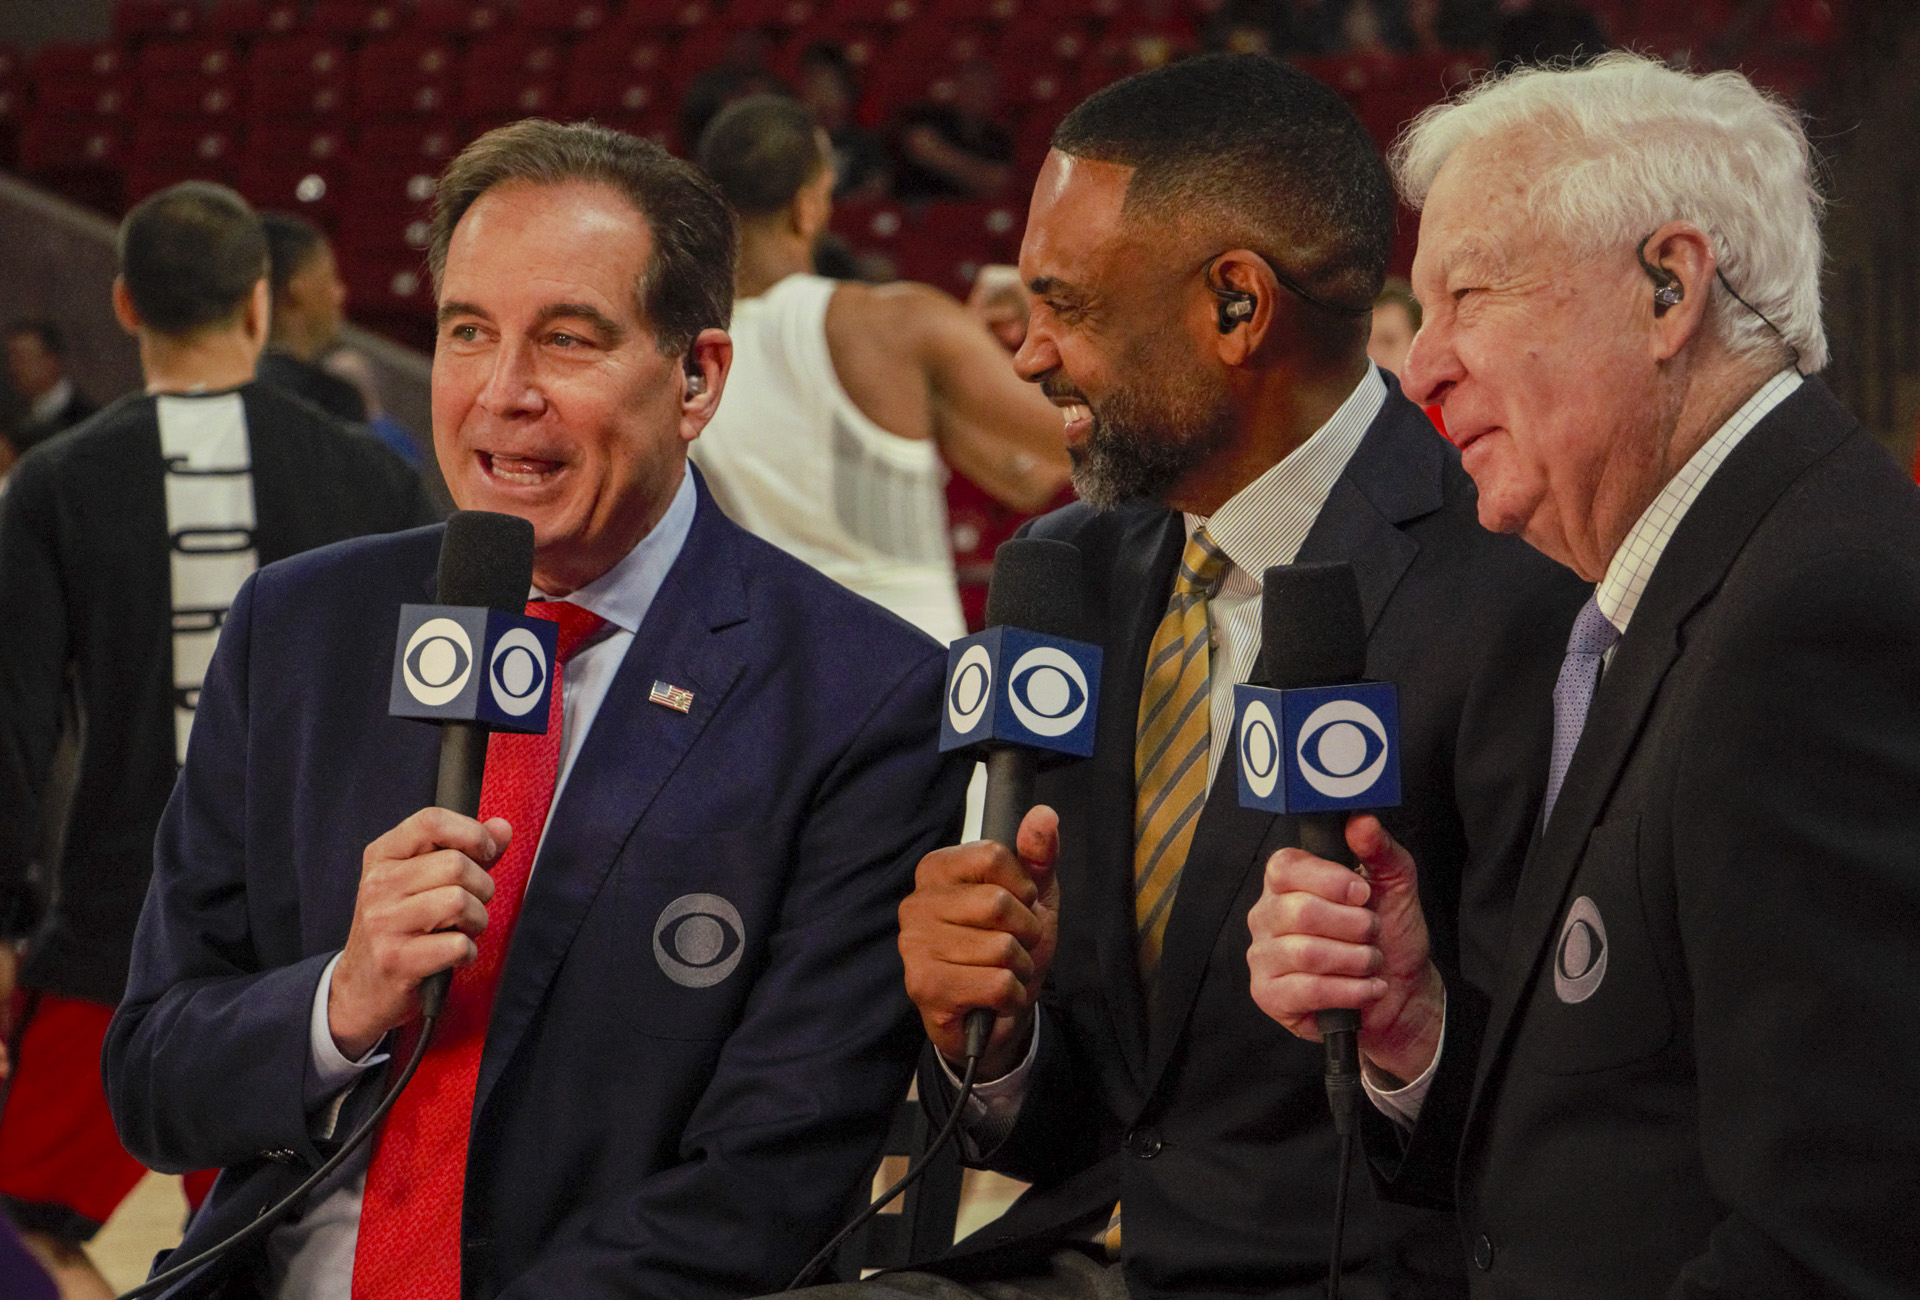 UH alum Jim Nantz (left) called his first Houston home game for CBS on Sunday at Fertitta Center. Nantz was a public address announcer for UH in the late 1970s, when the veteran sportscaster was a student at the University. | Andy Yanez/The Cougar